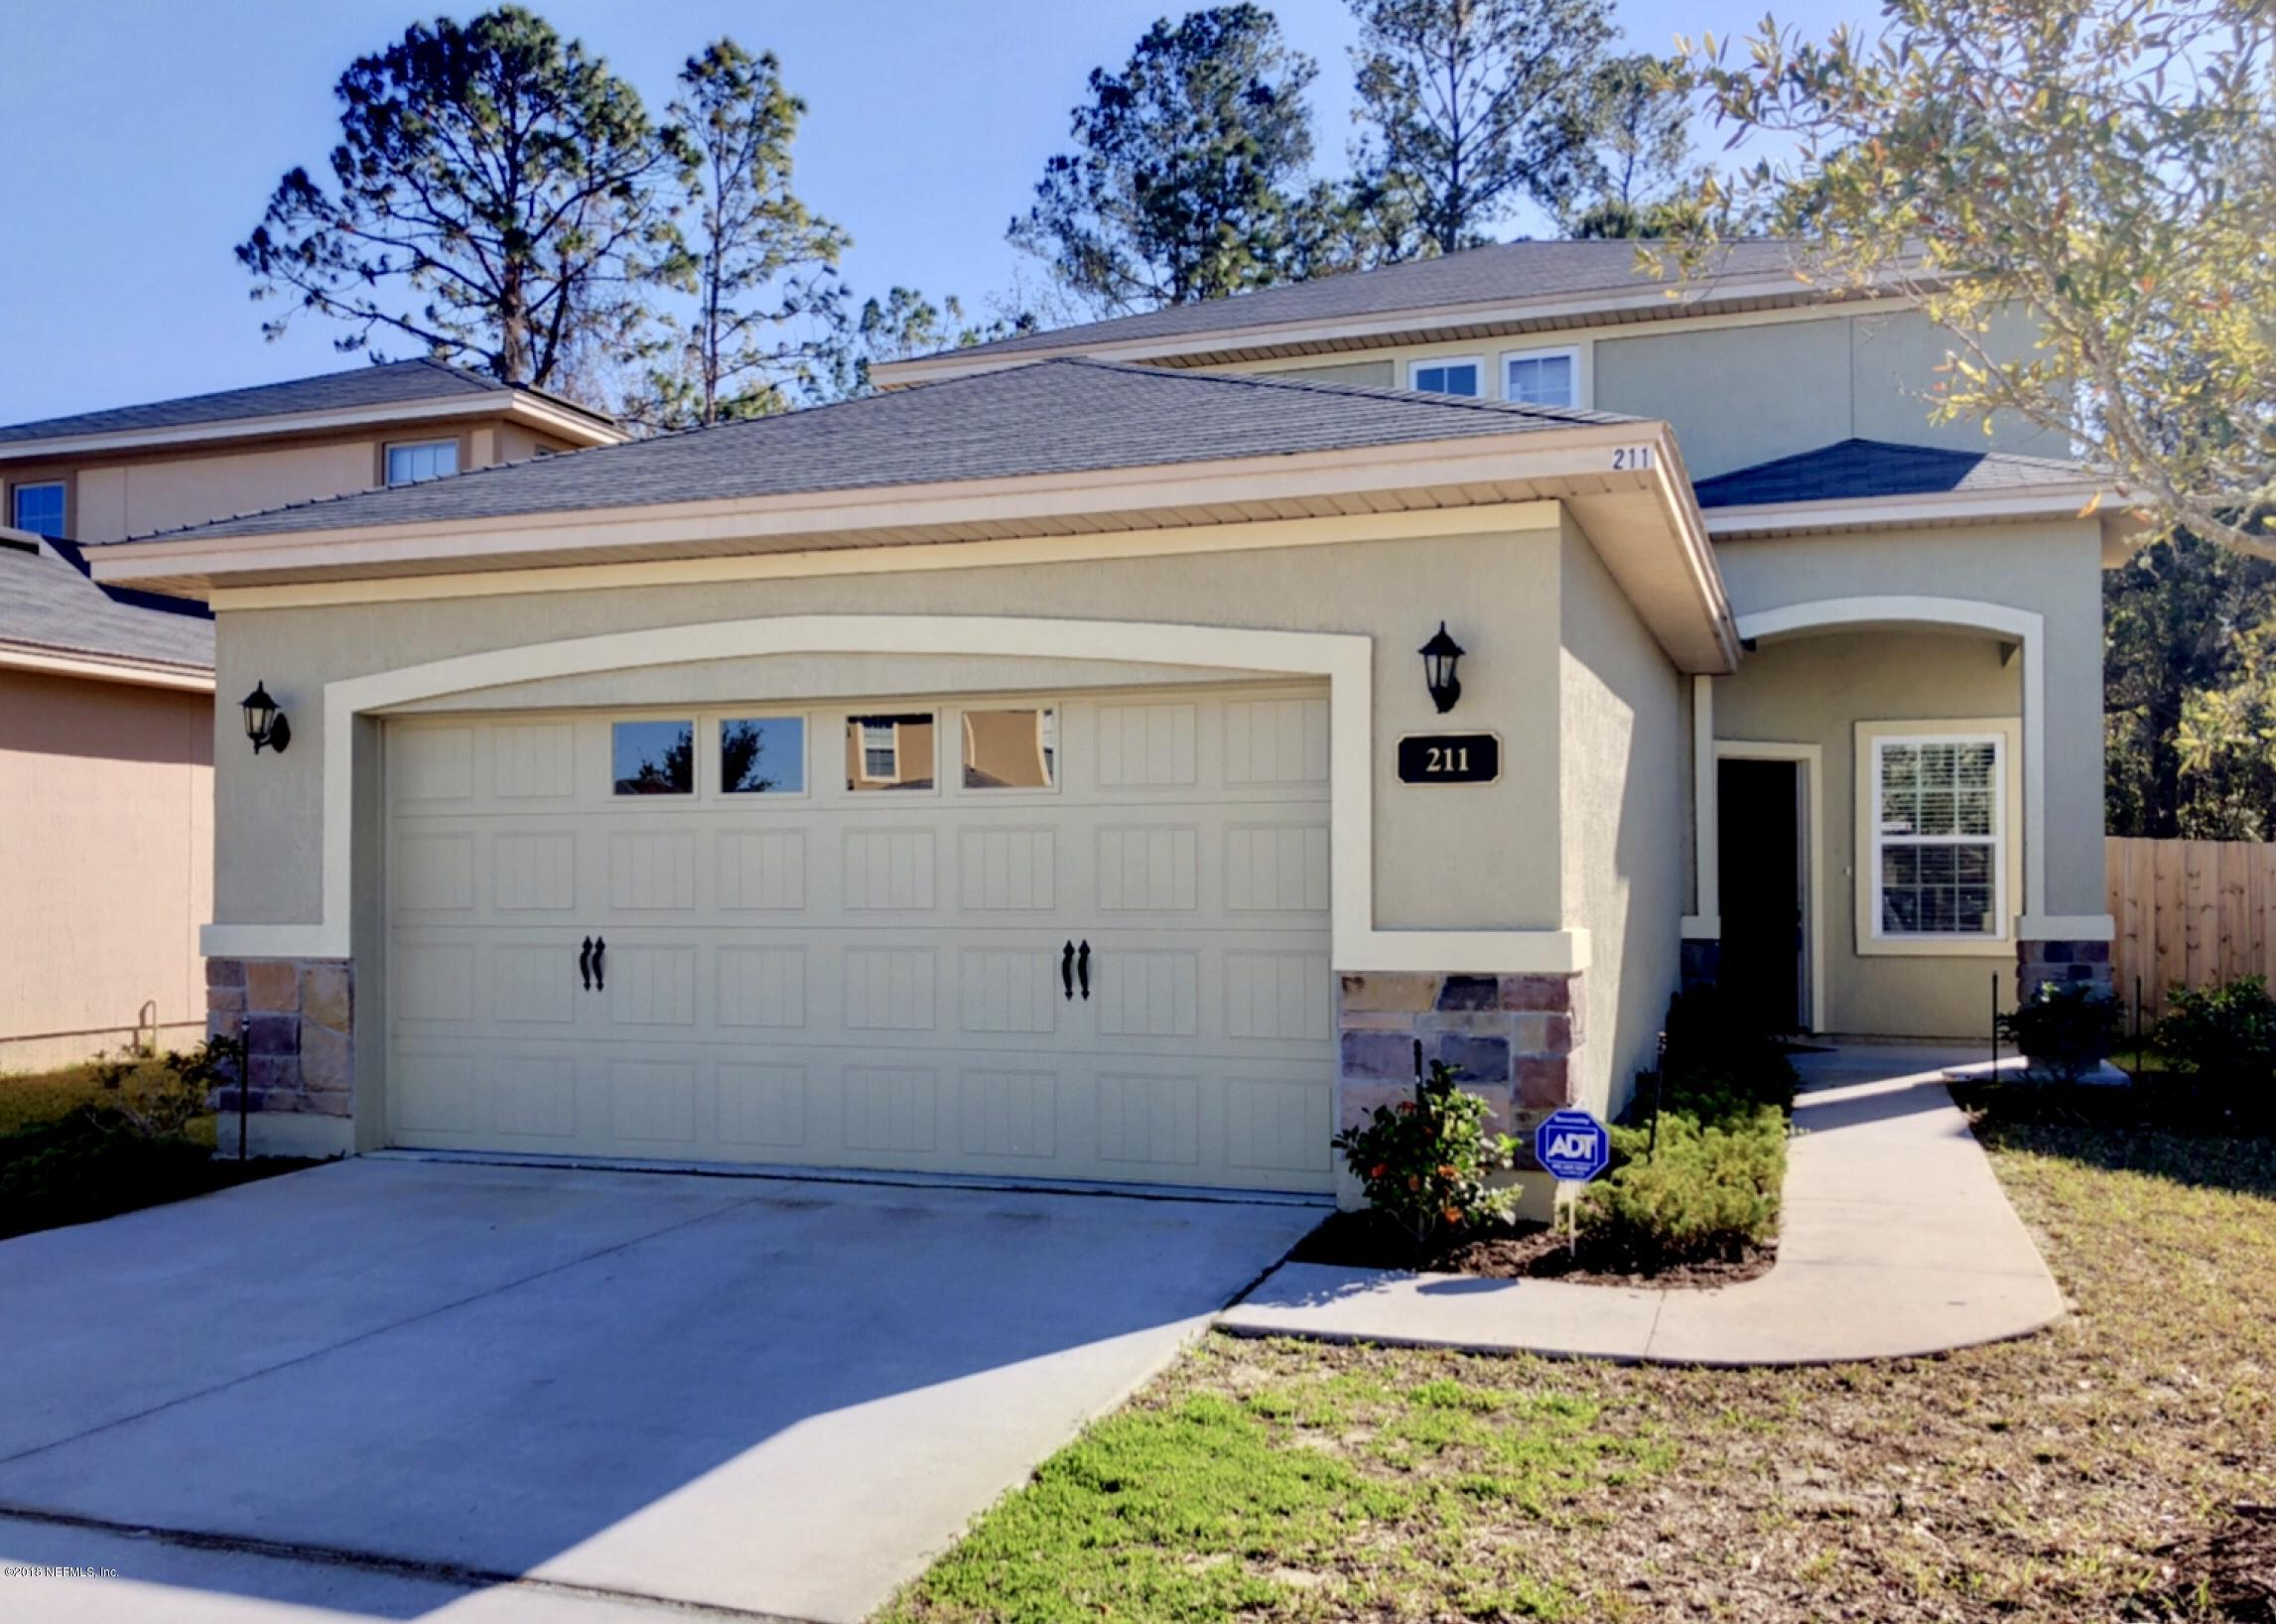 211 BUCK RUN, ST AUGUSTINE, FLORIDA 32092, 3 Bedrooms Bedrooms, ,2 BathroomsBathrooms,Residential - single family,For sale,BUCK RUN,964714